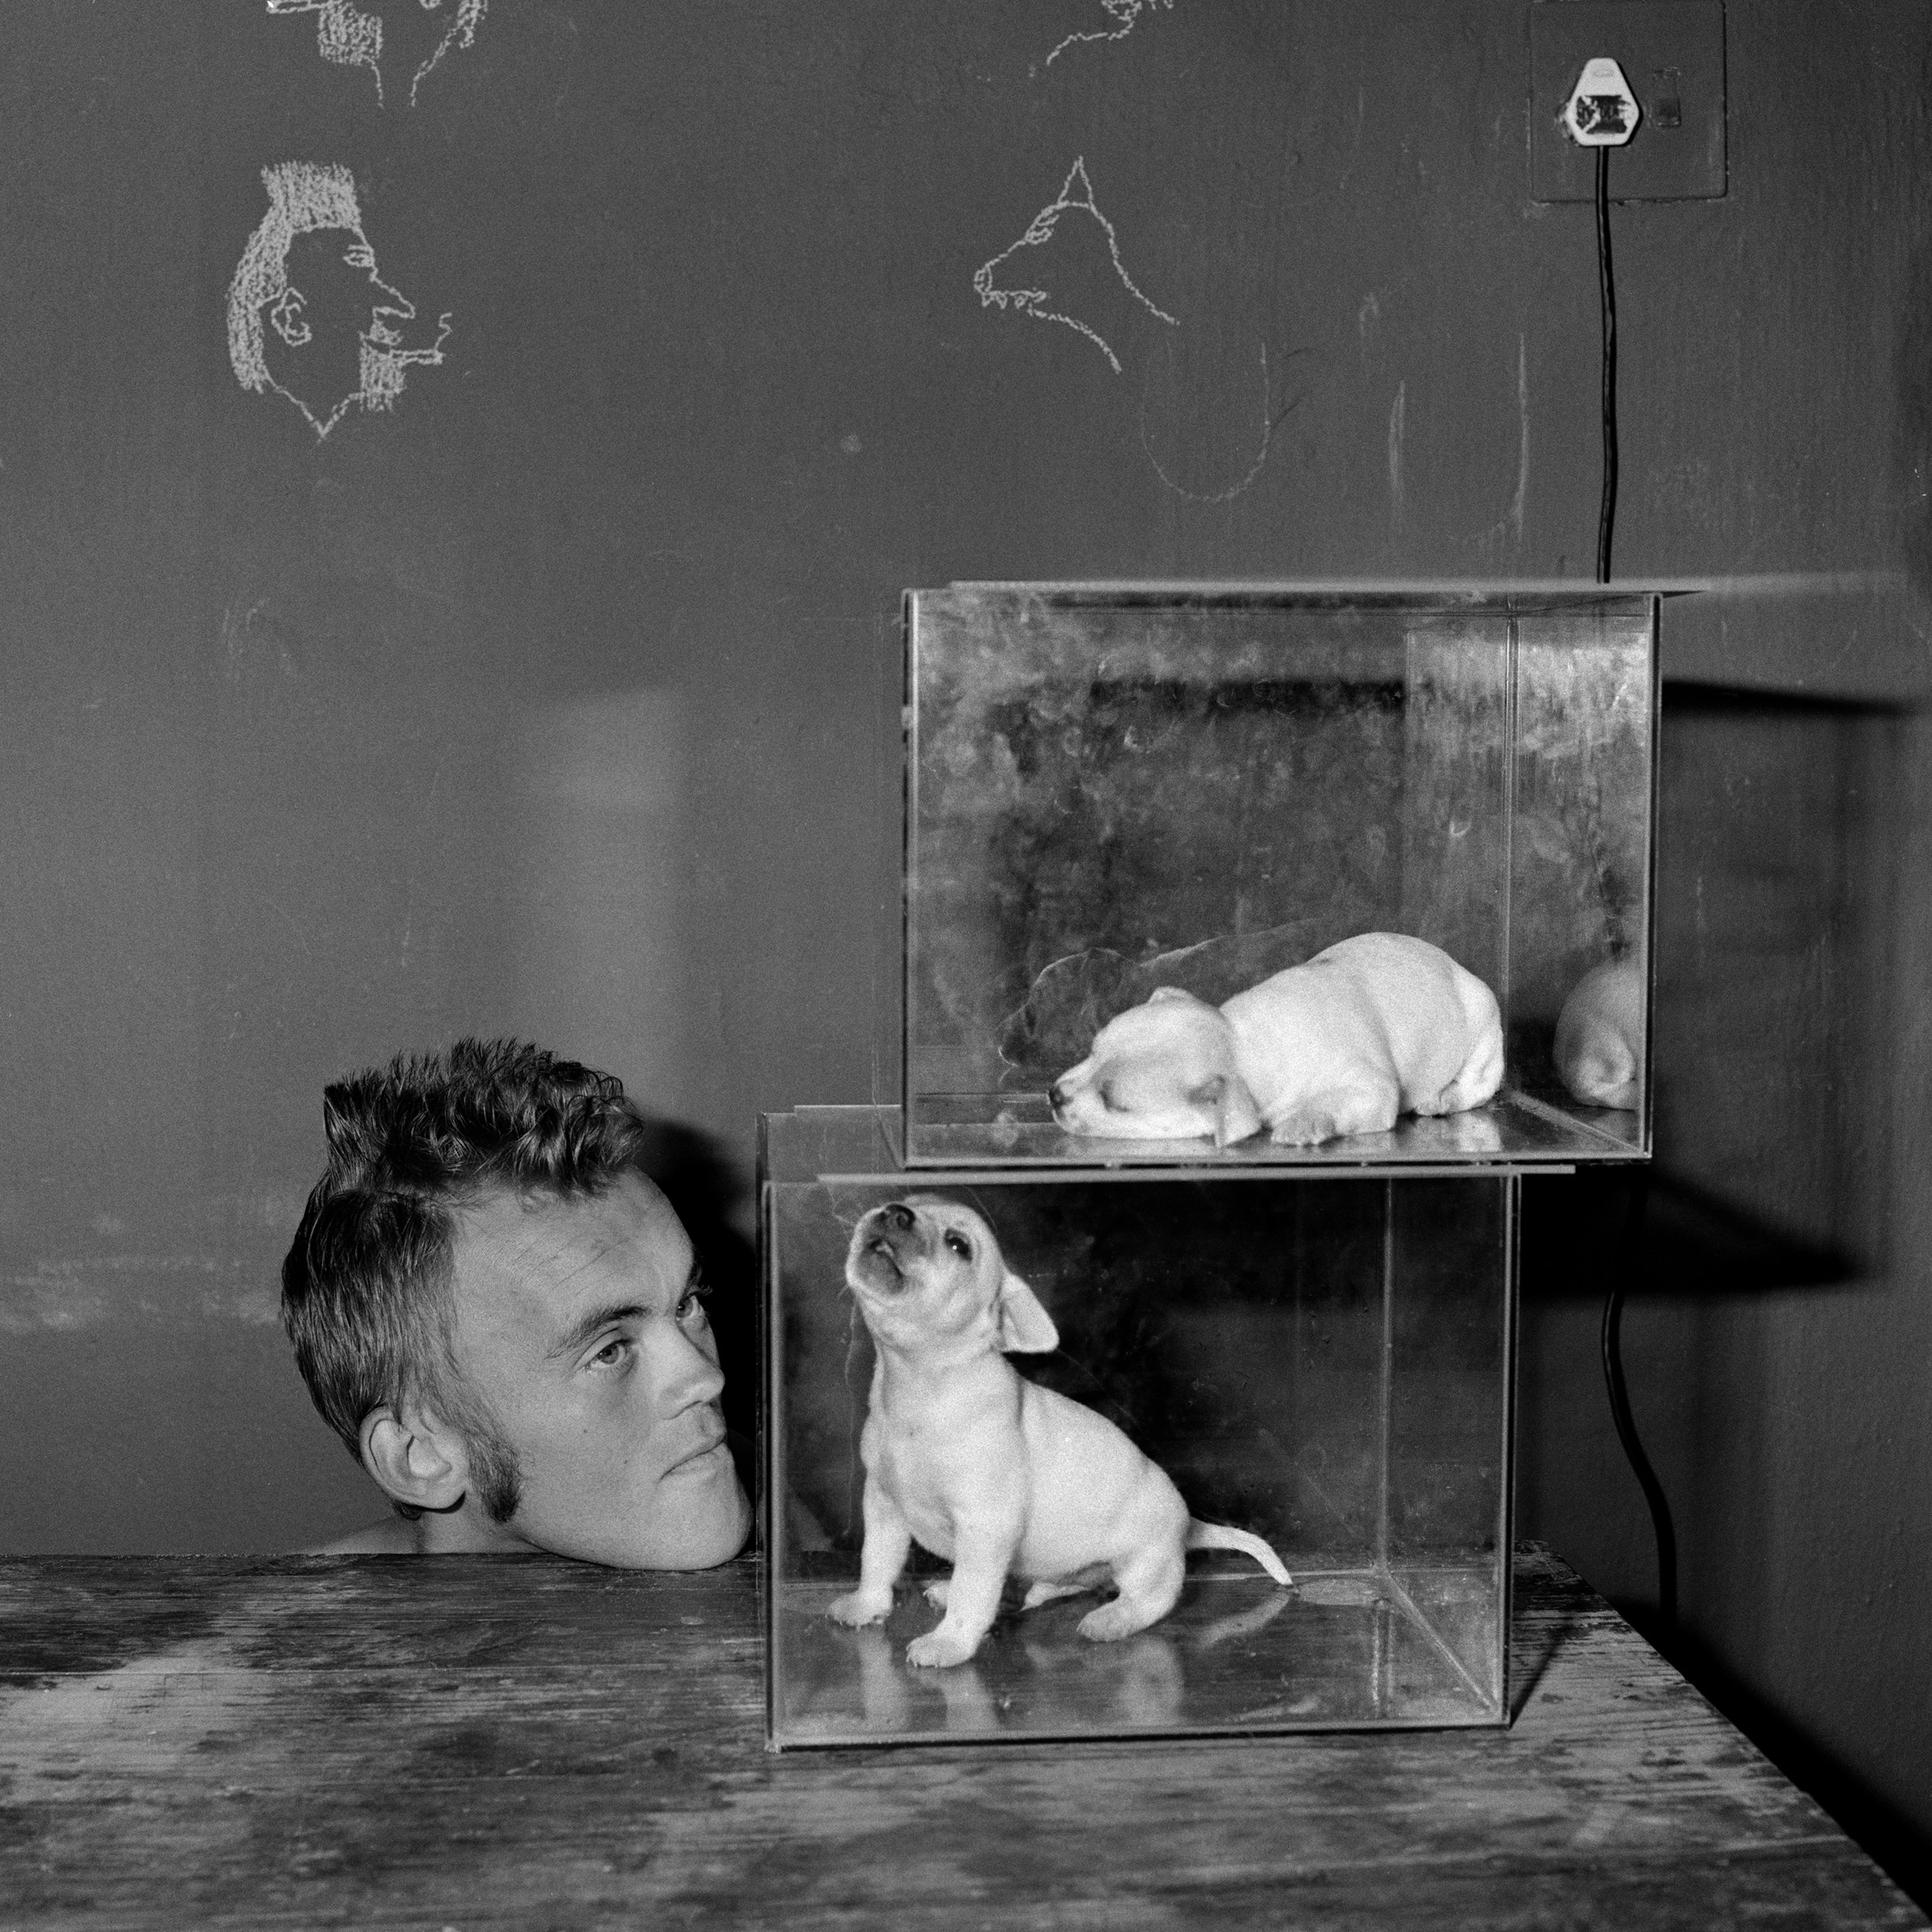 PUPPIES IN FISHTANKS (2000). CREDIT: ROGER BALLEN